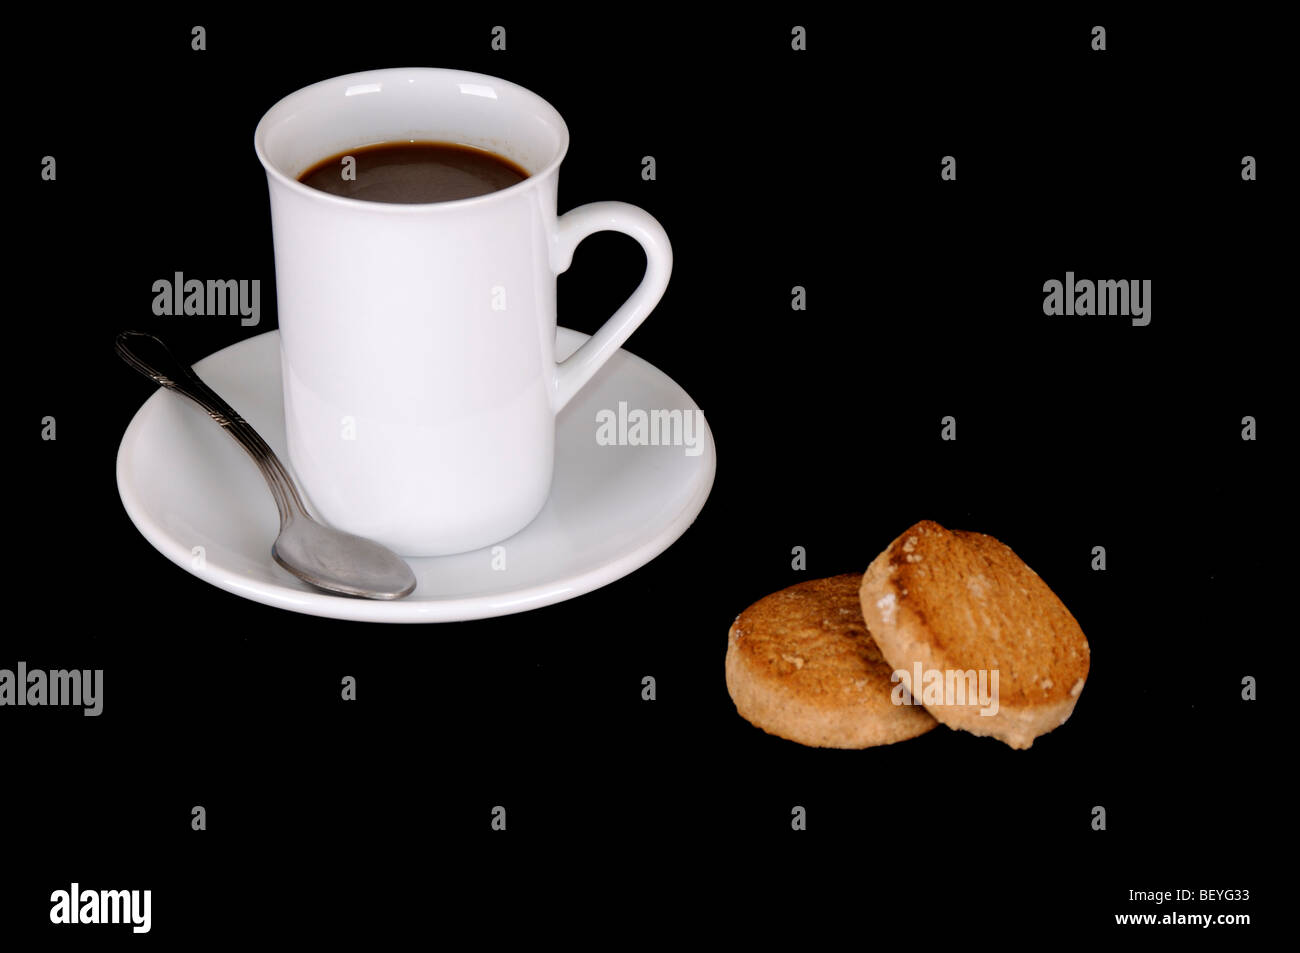 Image of coffee - Stock Image